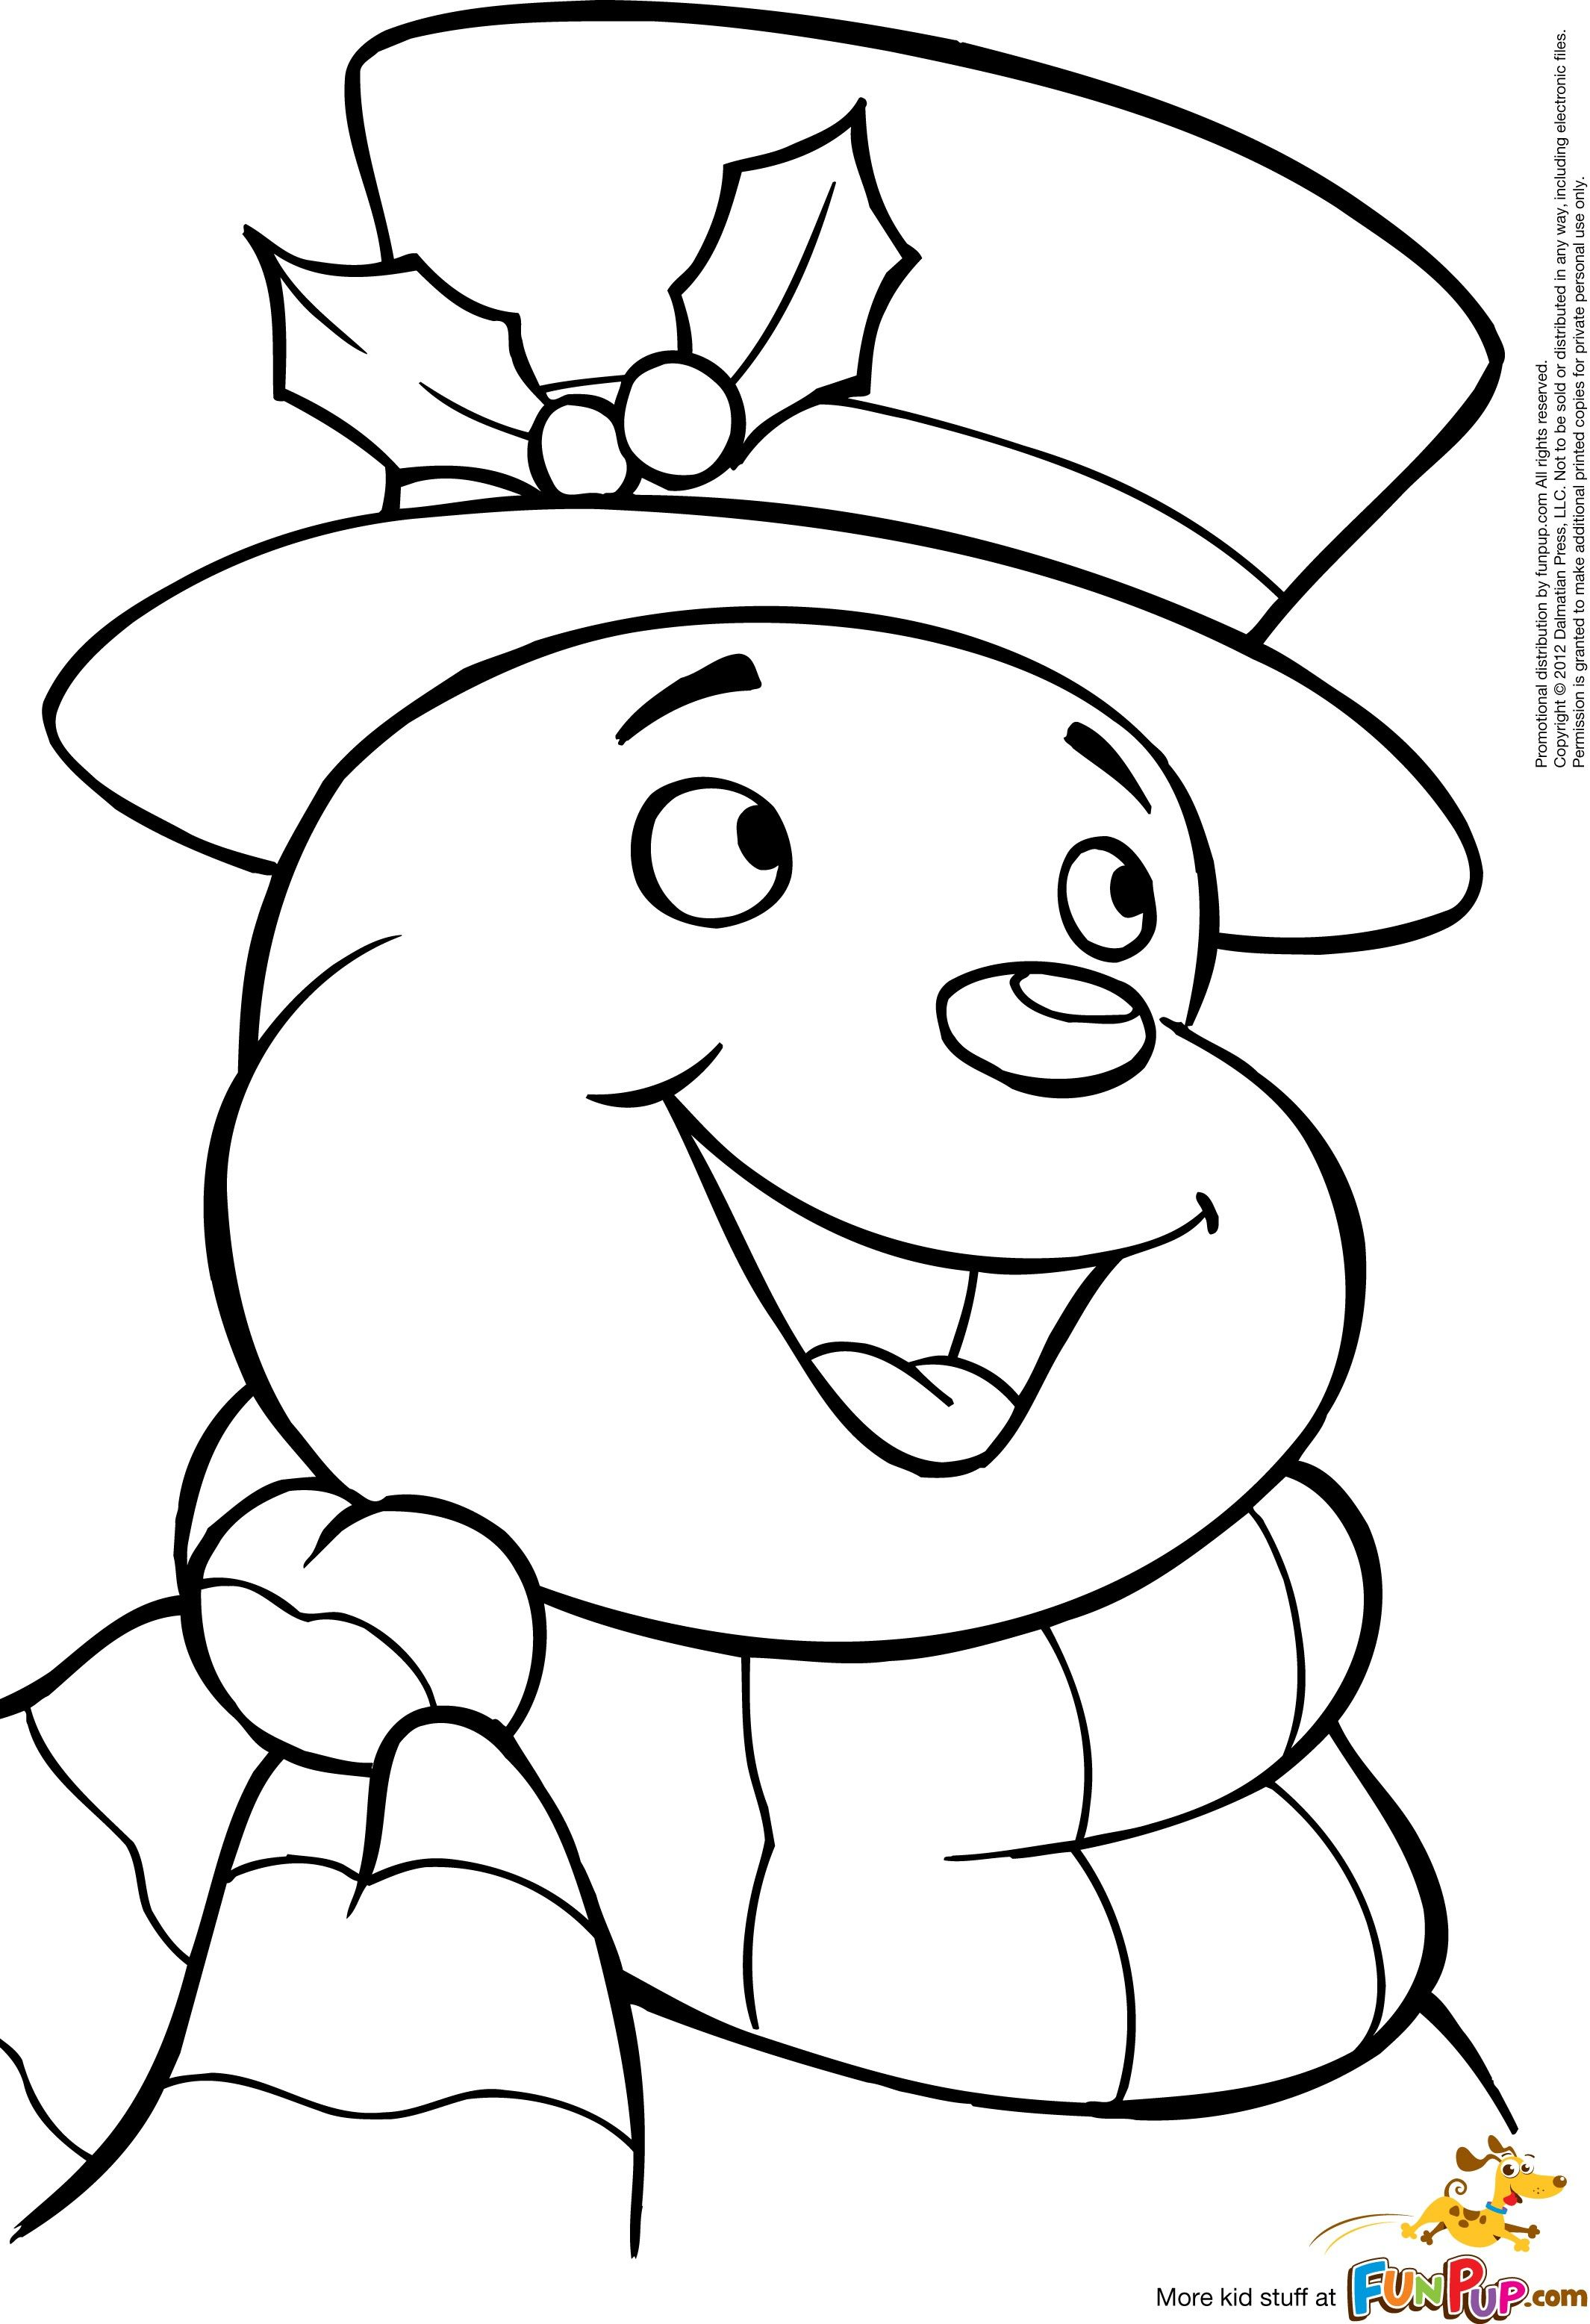 printable jolly snowman coloring